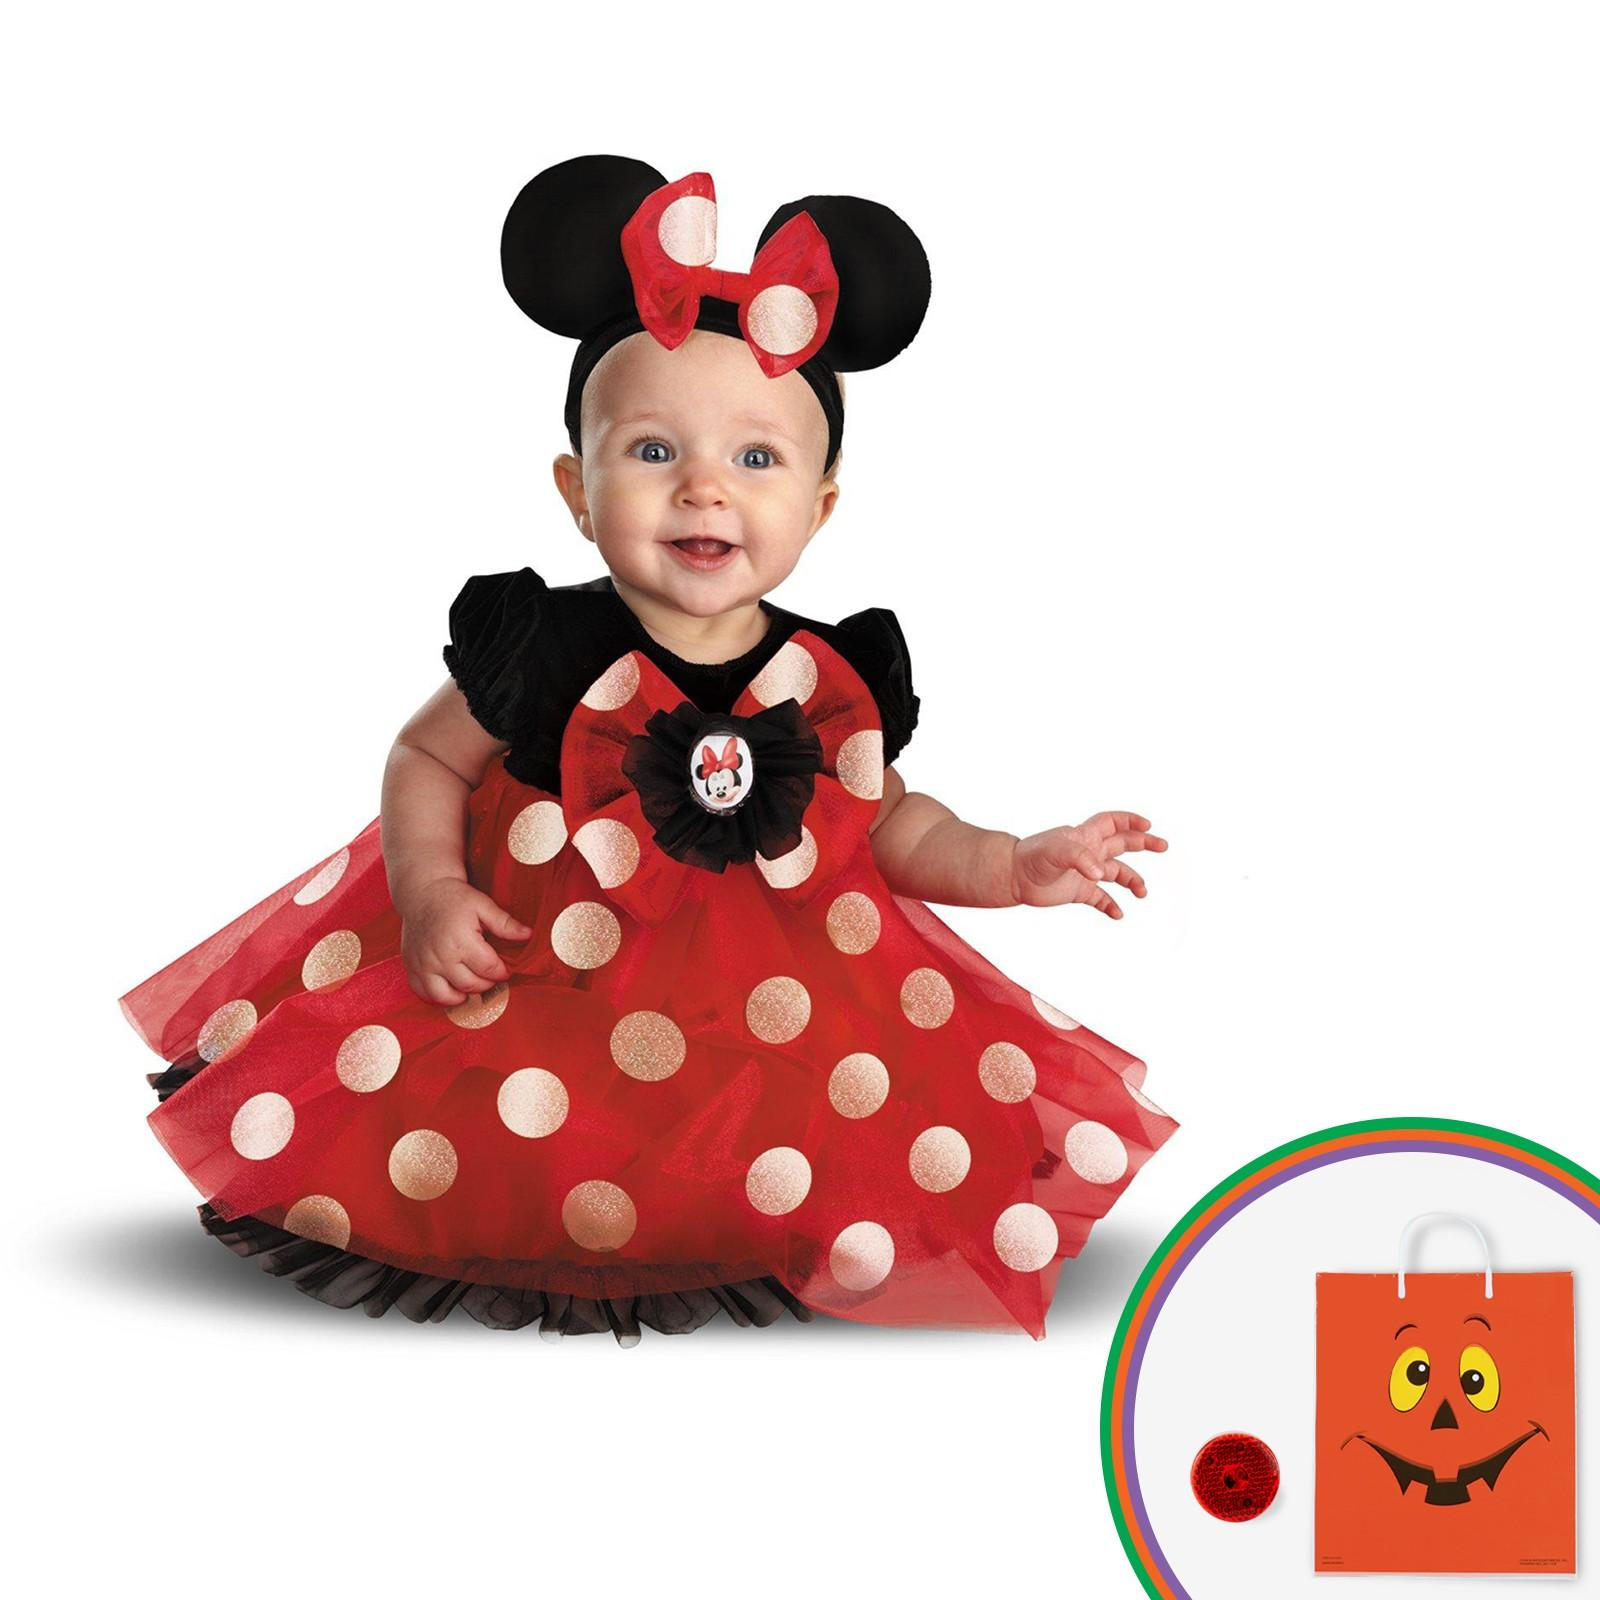 Red Minnie Child Costume Kit with Free Gift